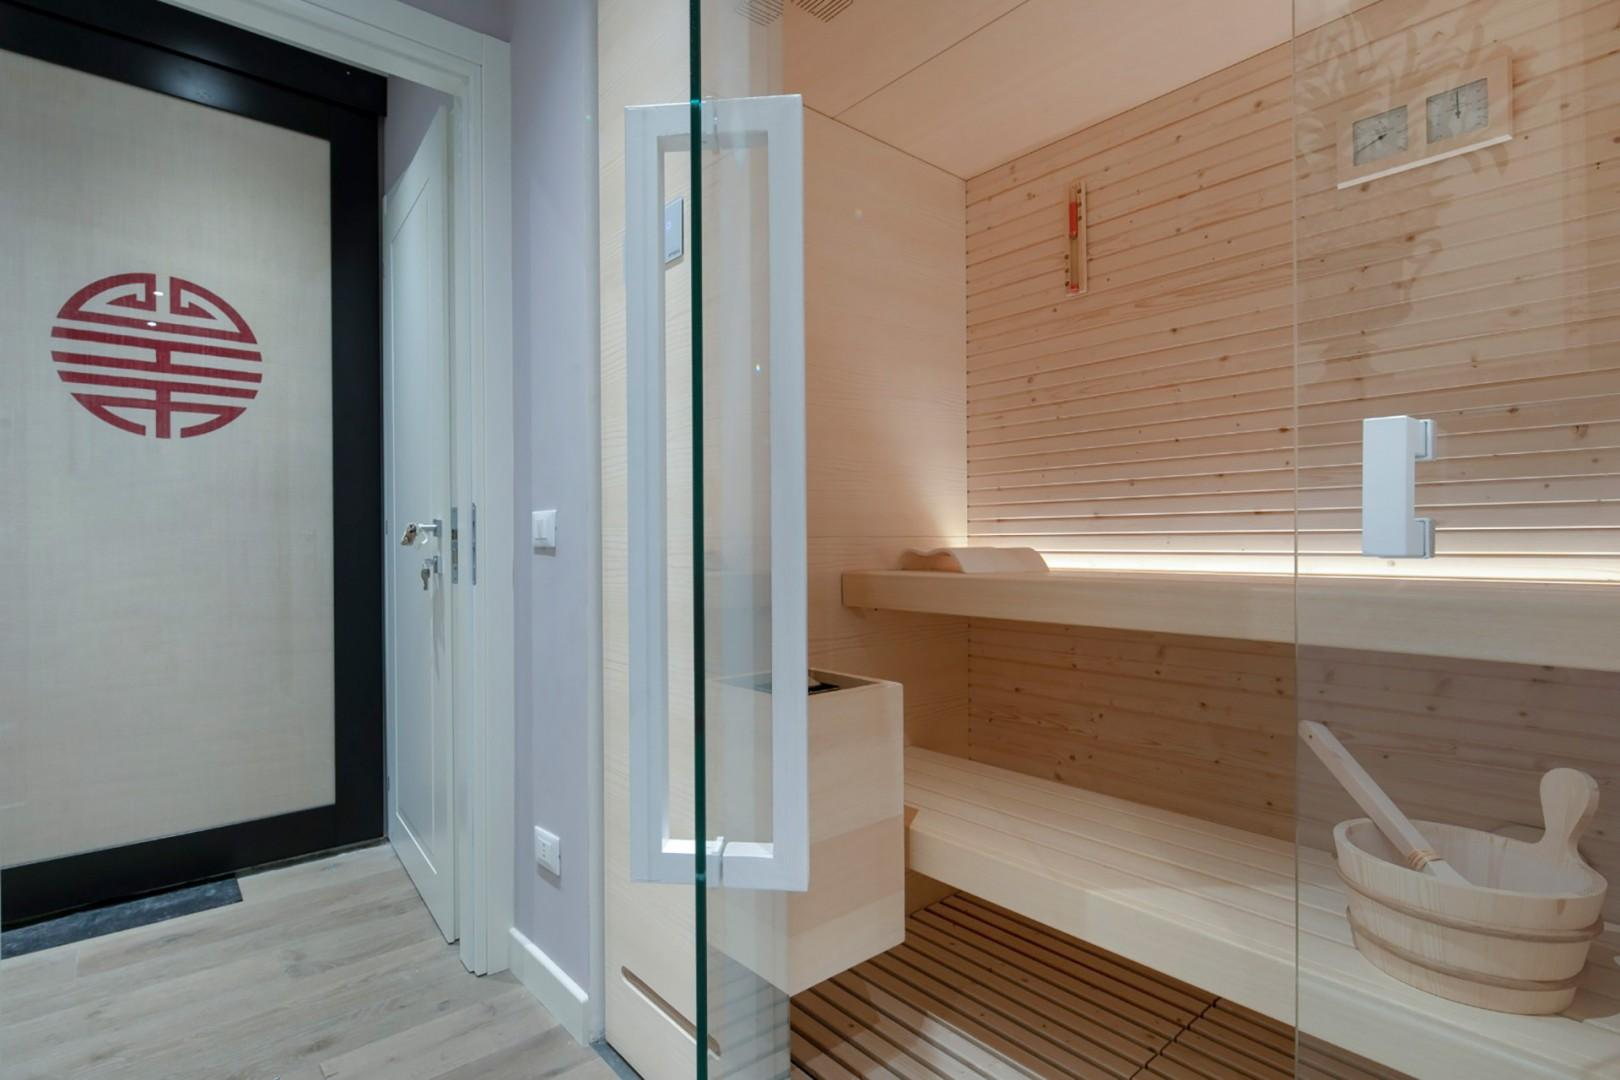 Relax and revitalize in the private sauna.